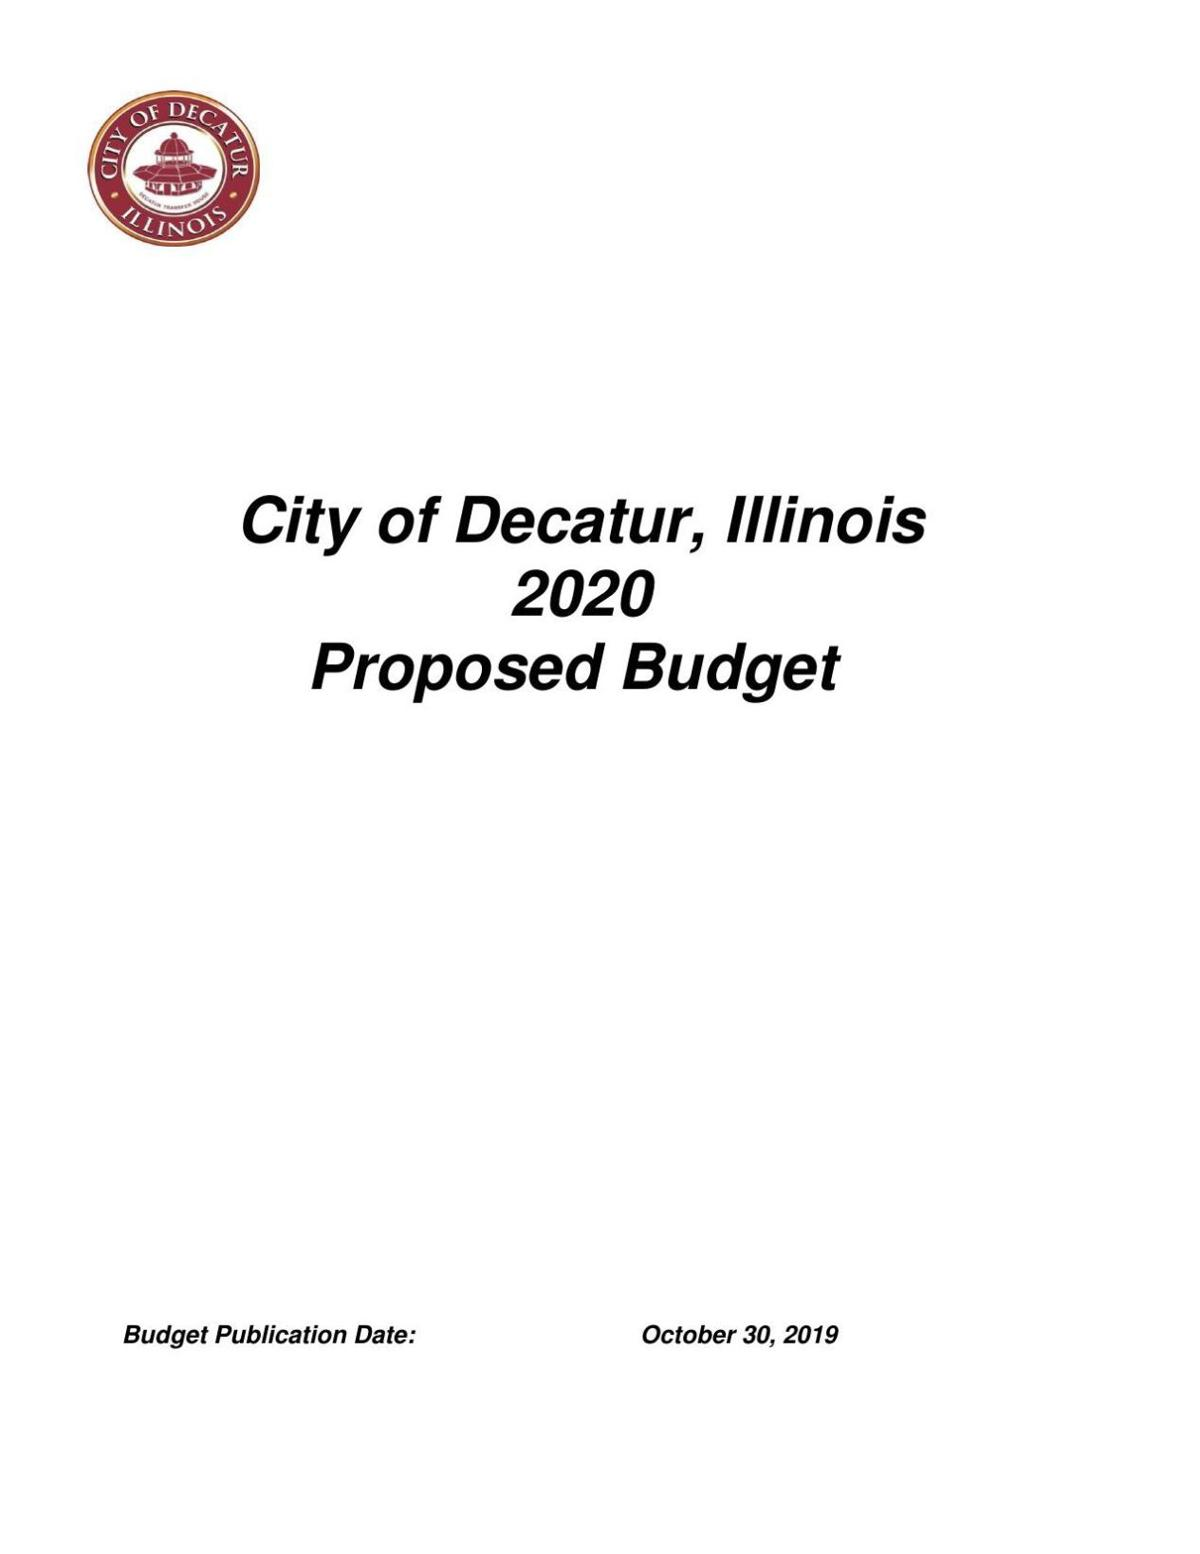 City of Decatur 2020 Proposed Budget